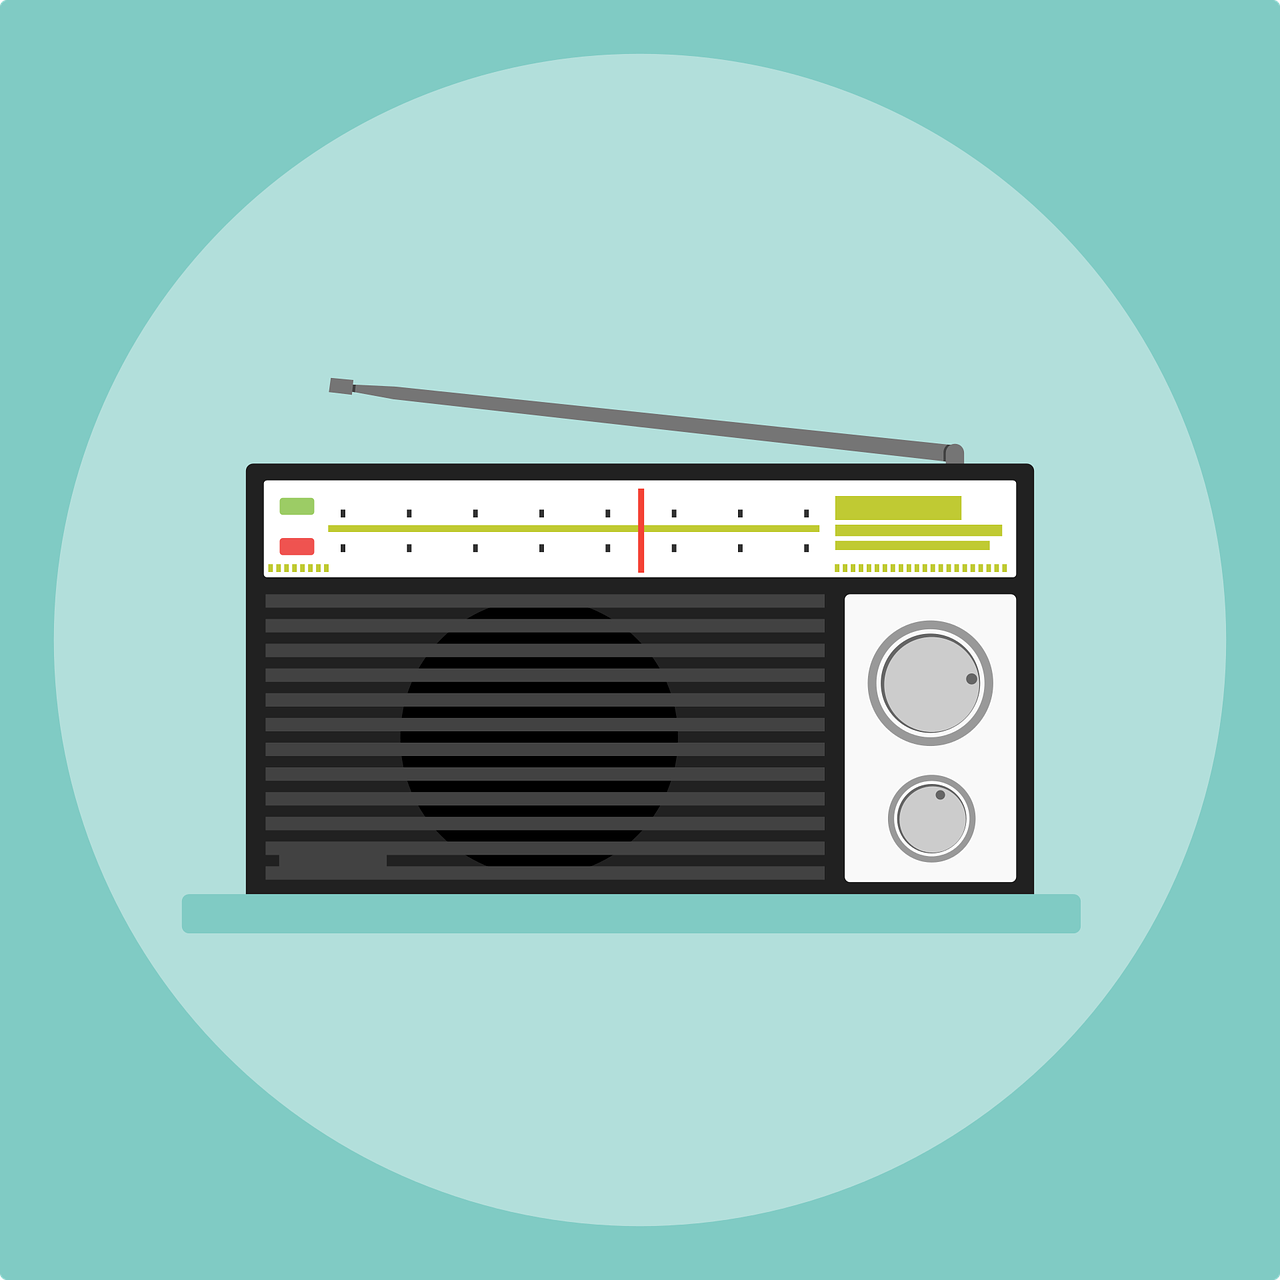 old radio,electronic,antique,retro,radio,equipment,vintage,music,sound,technology,broadcast,audio,volume,wave,musical,classic,frequency,nostalgia,tuner,speaker,station,antenna,free vector graphics,free pictures, free photos, free images, royalty free, free illustrations, public domain